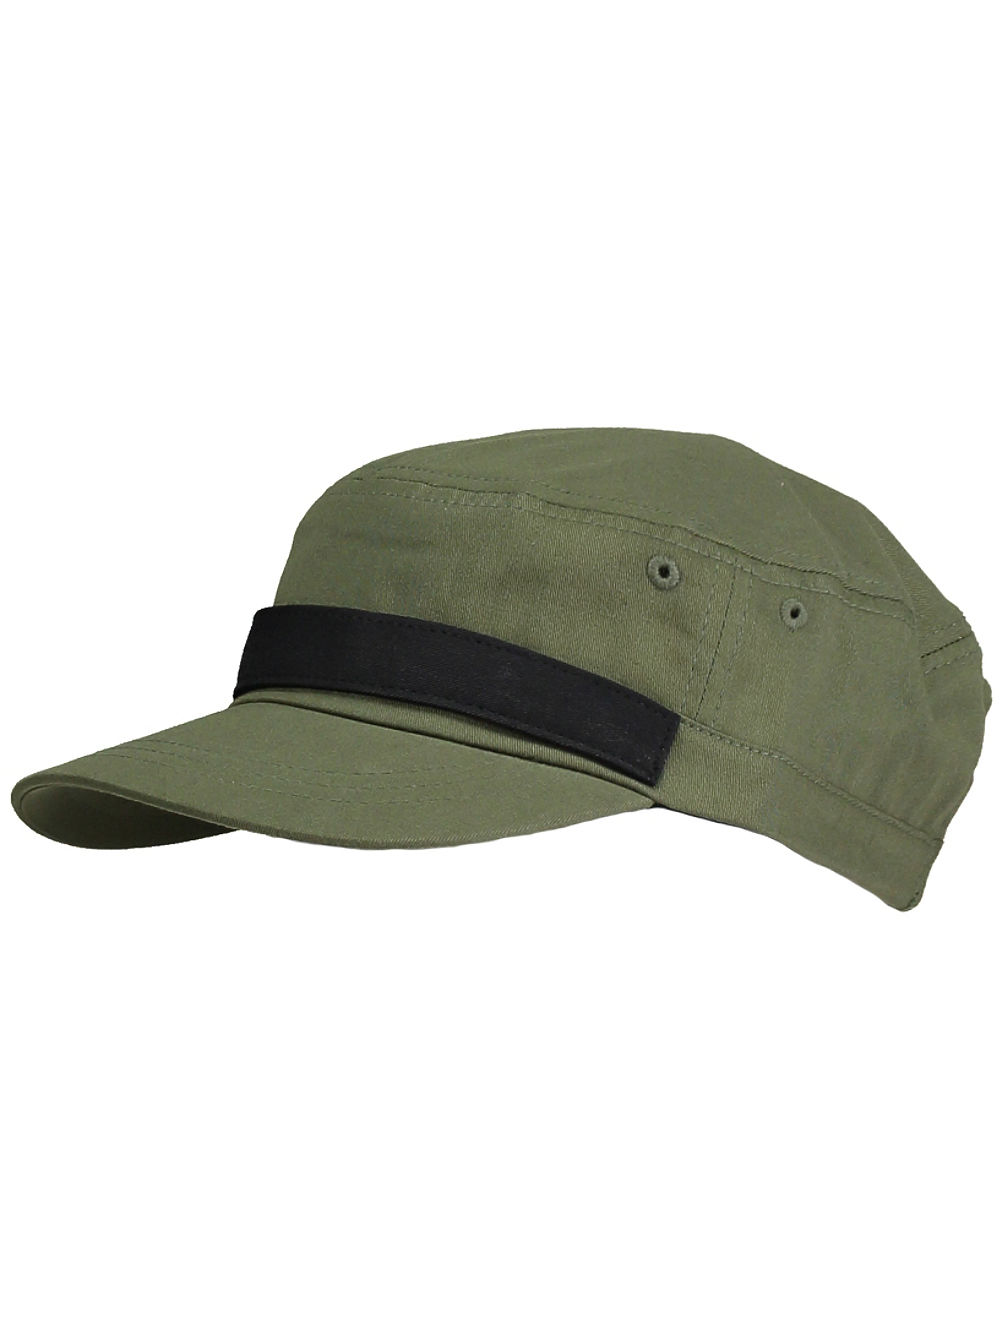 buy o 39 neill military cap online at blue. Black Bedroom Furniture Sets. Home Design Ideas